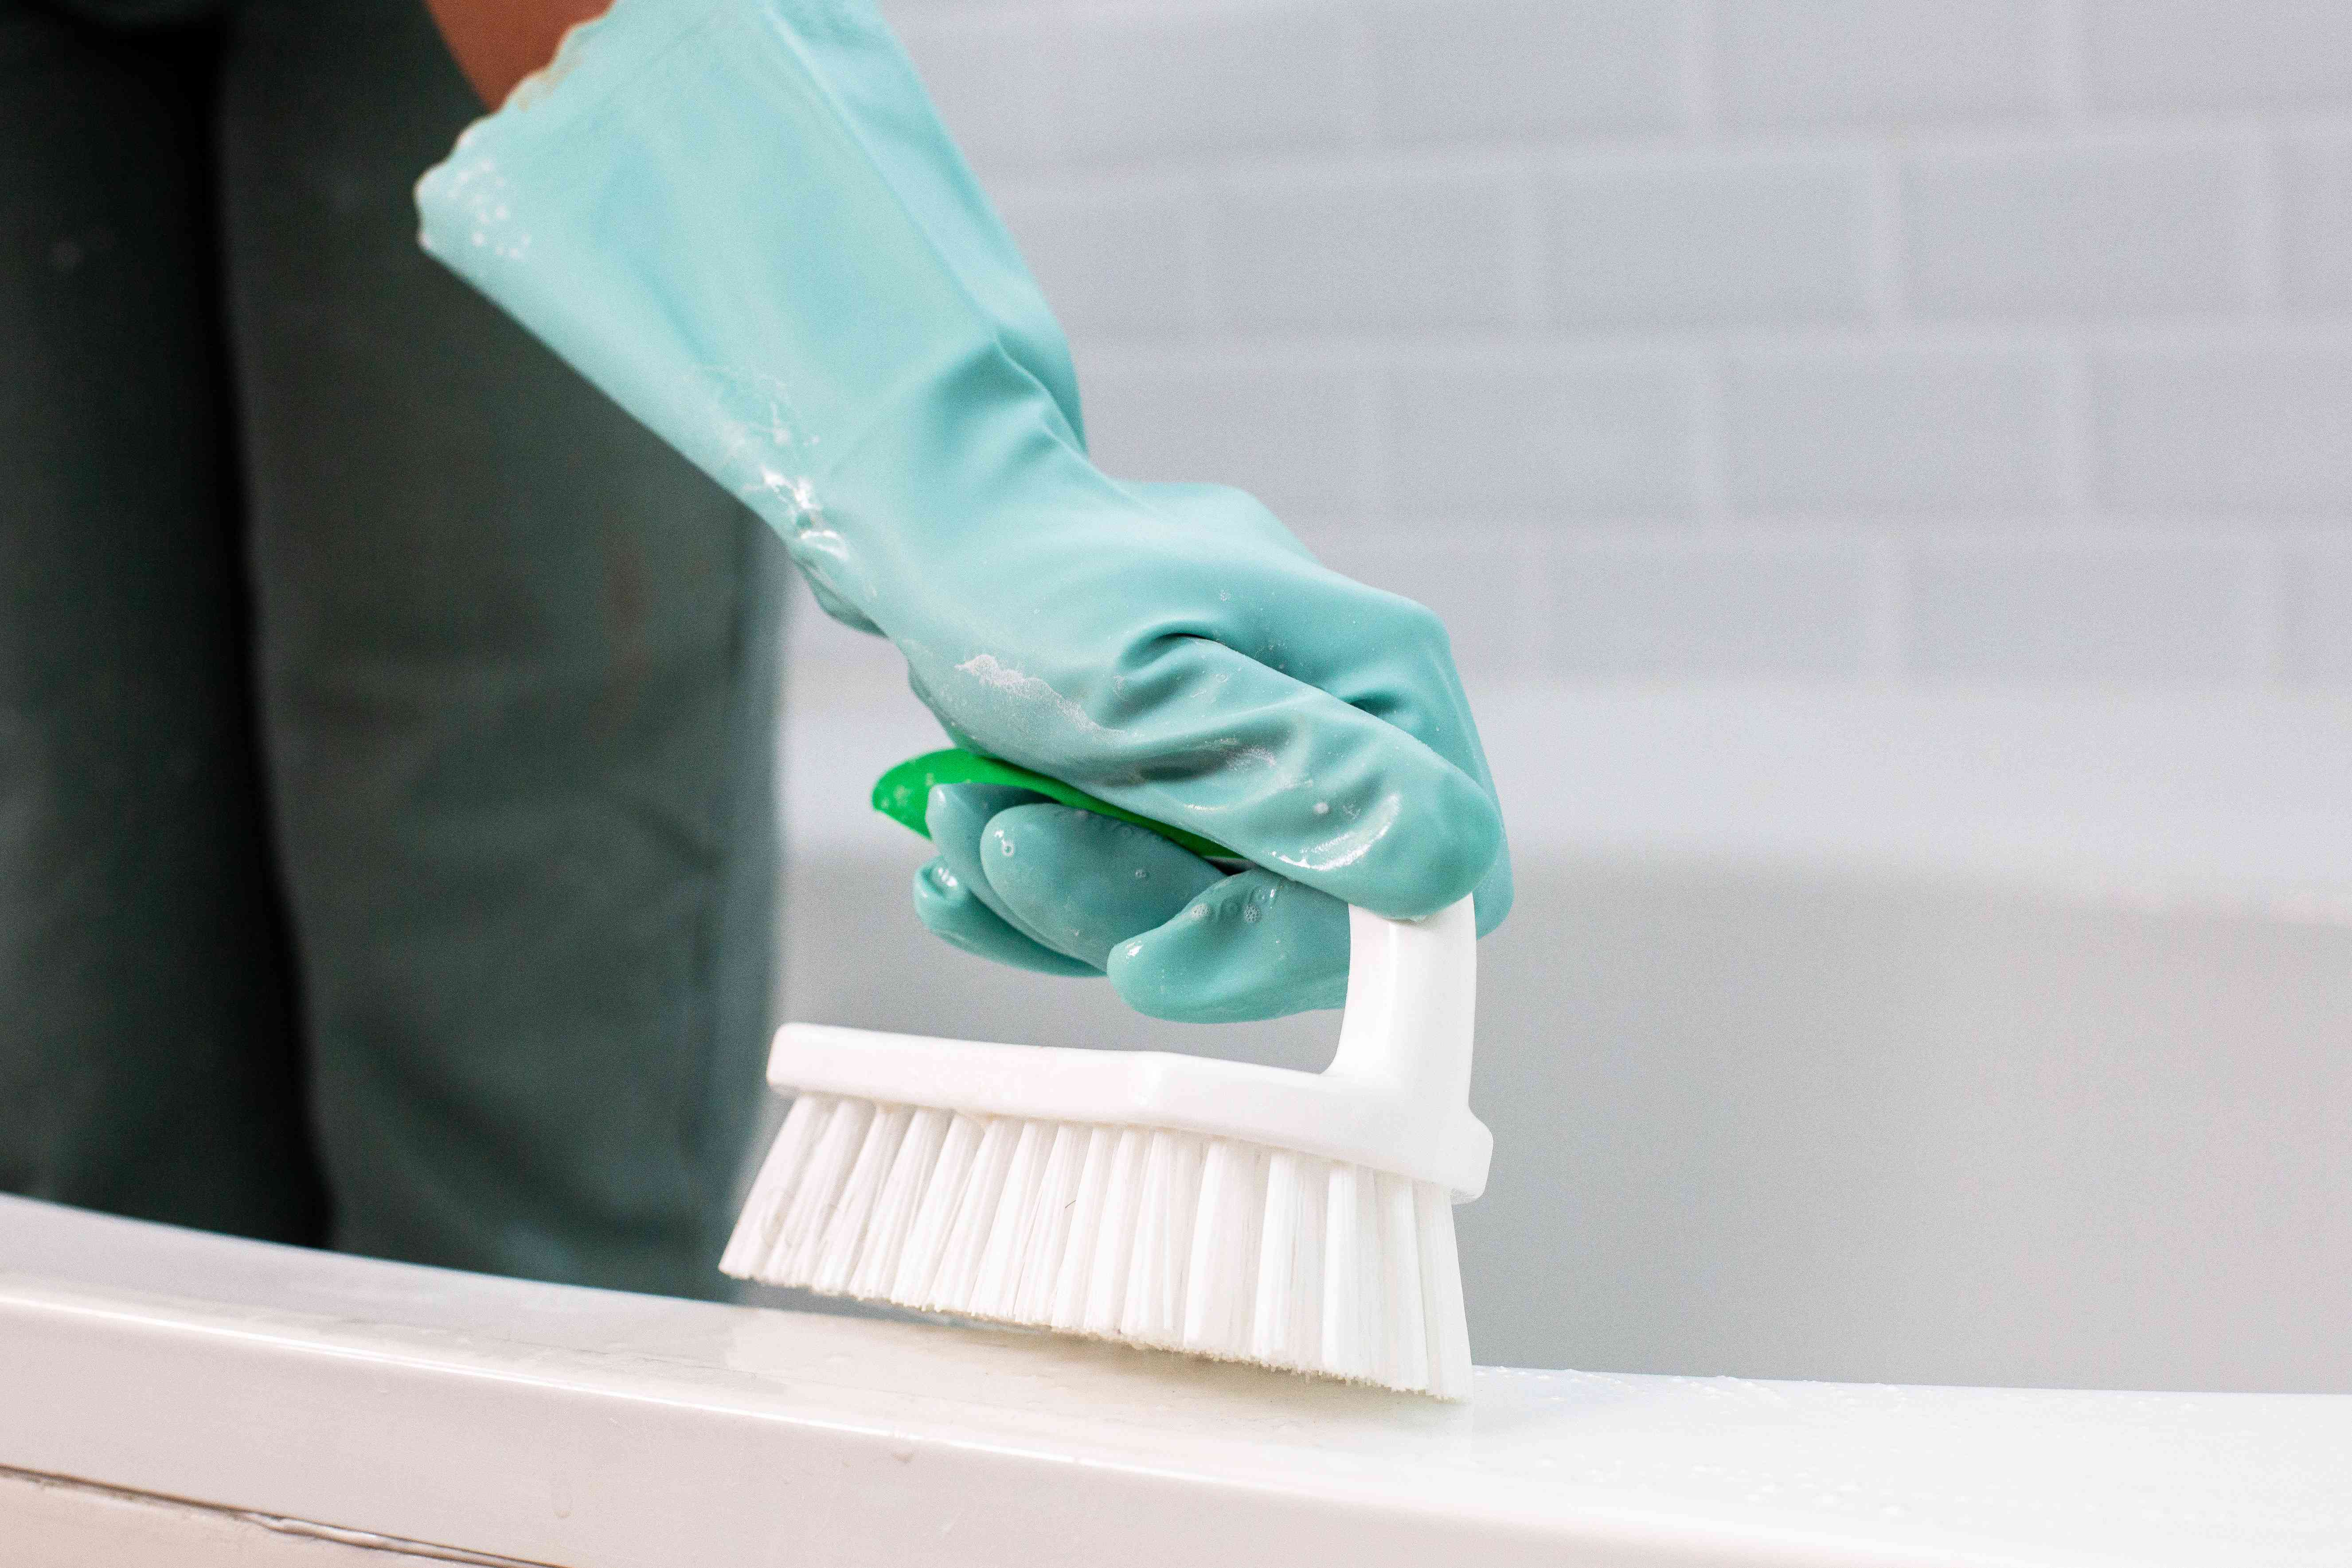 Bathtub cleaned with scrubbing brush and teal rubber gloves